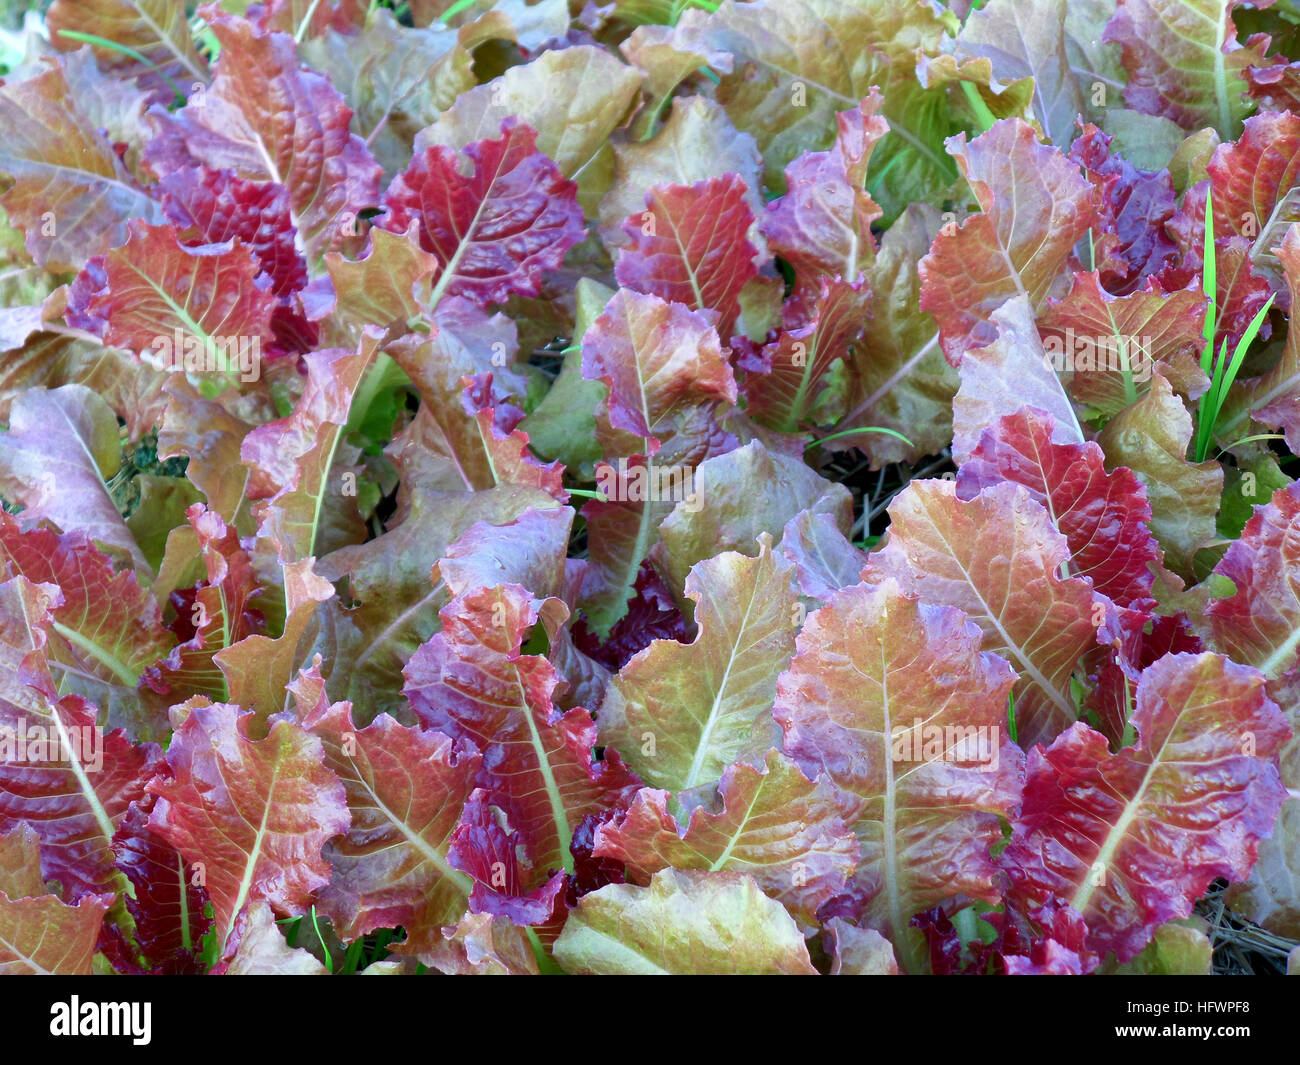 Green and Red Two Tone Vegetables in an Organic Farm - Stock Image